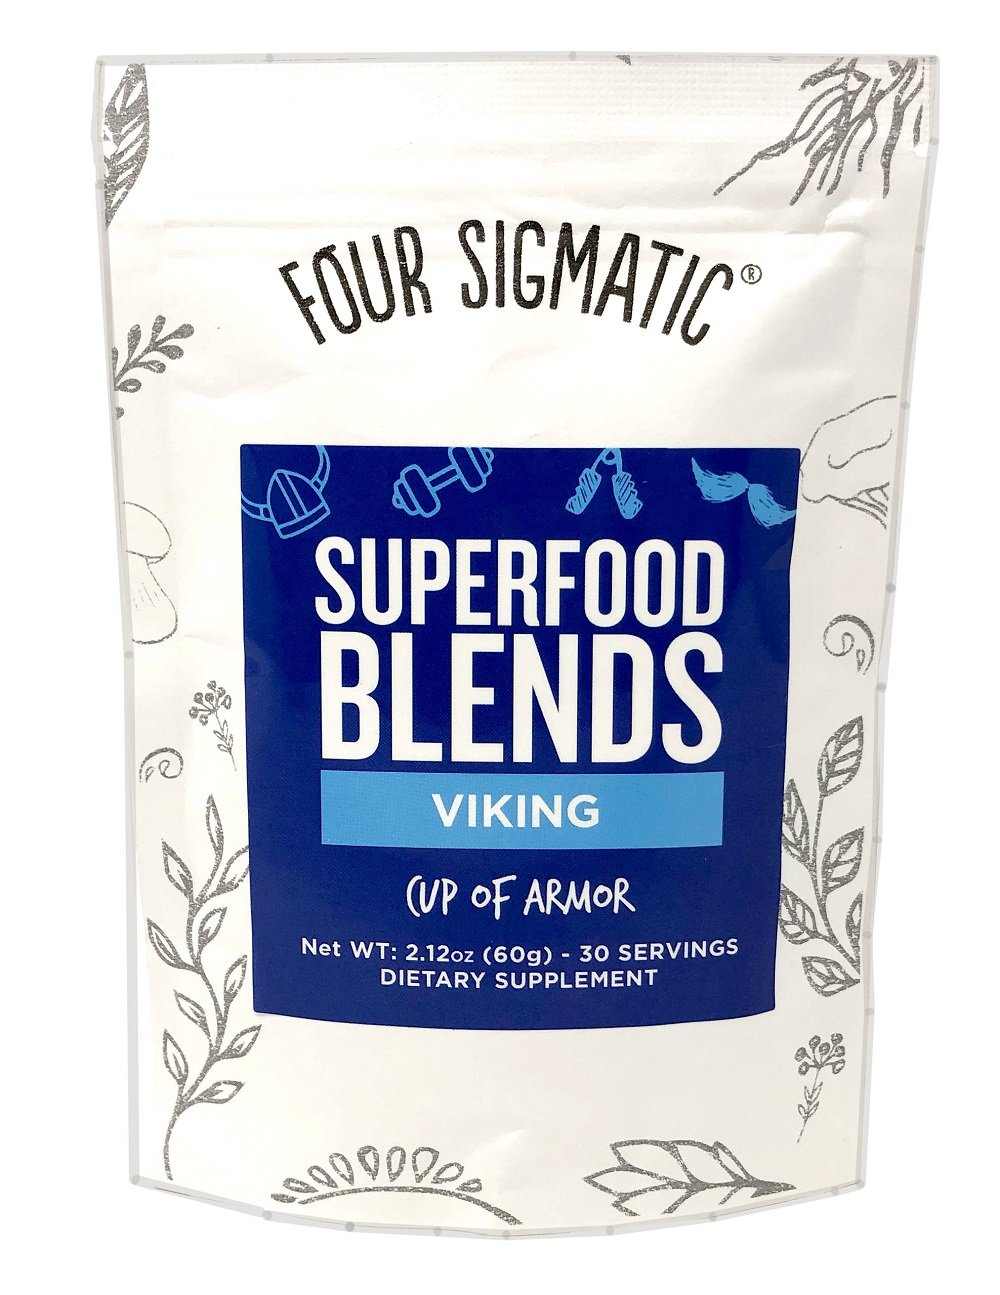 Four Sigma Foods Viking Blend Wildcrafted Superfoods, 2.12 Ounce